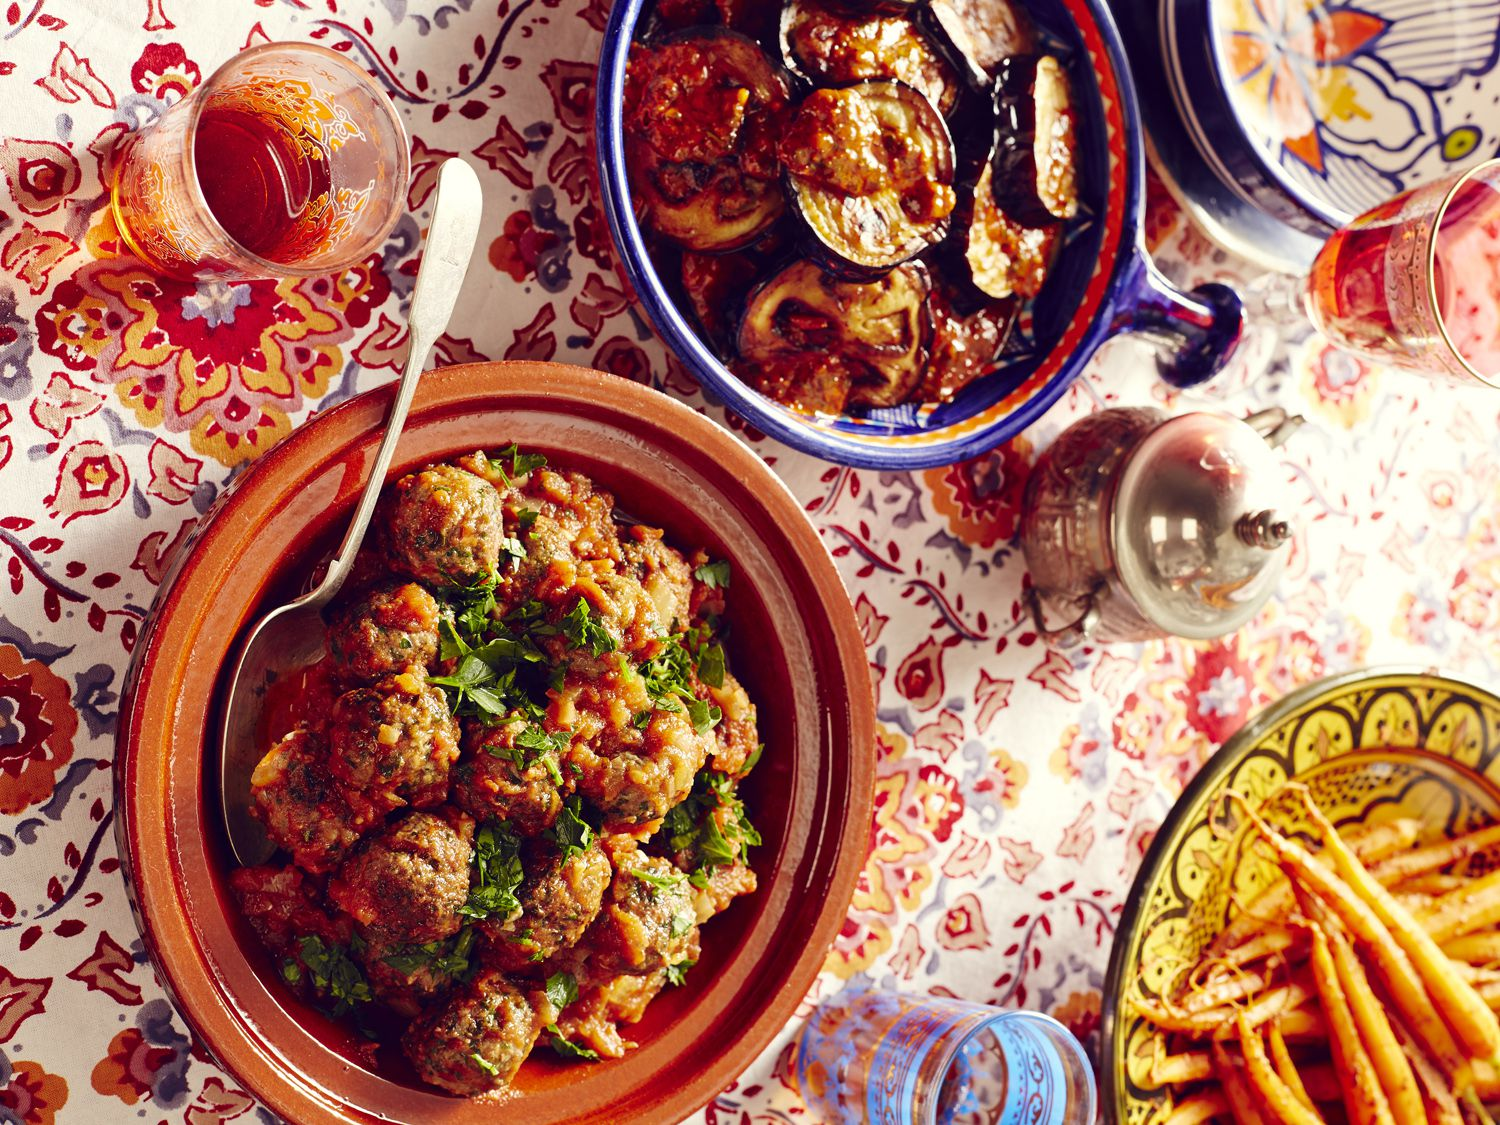 Moroccan Meatball Recipes Your Whole Family Will Love